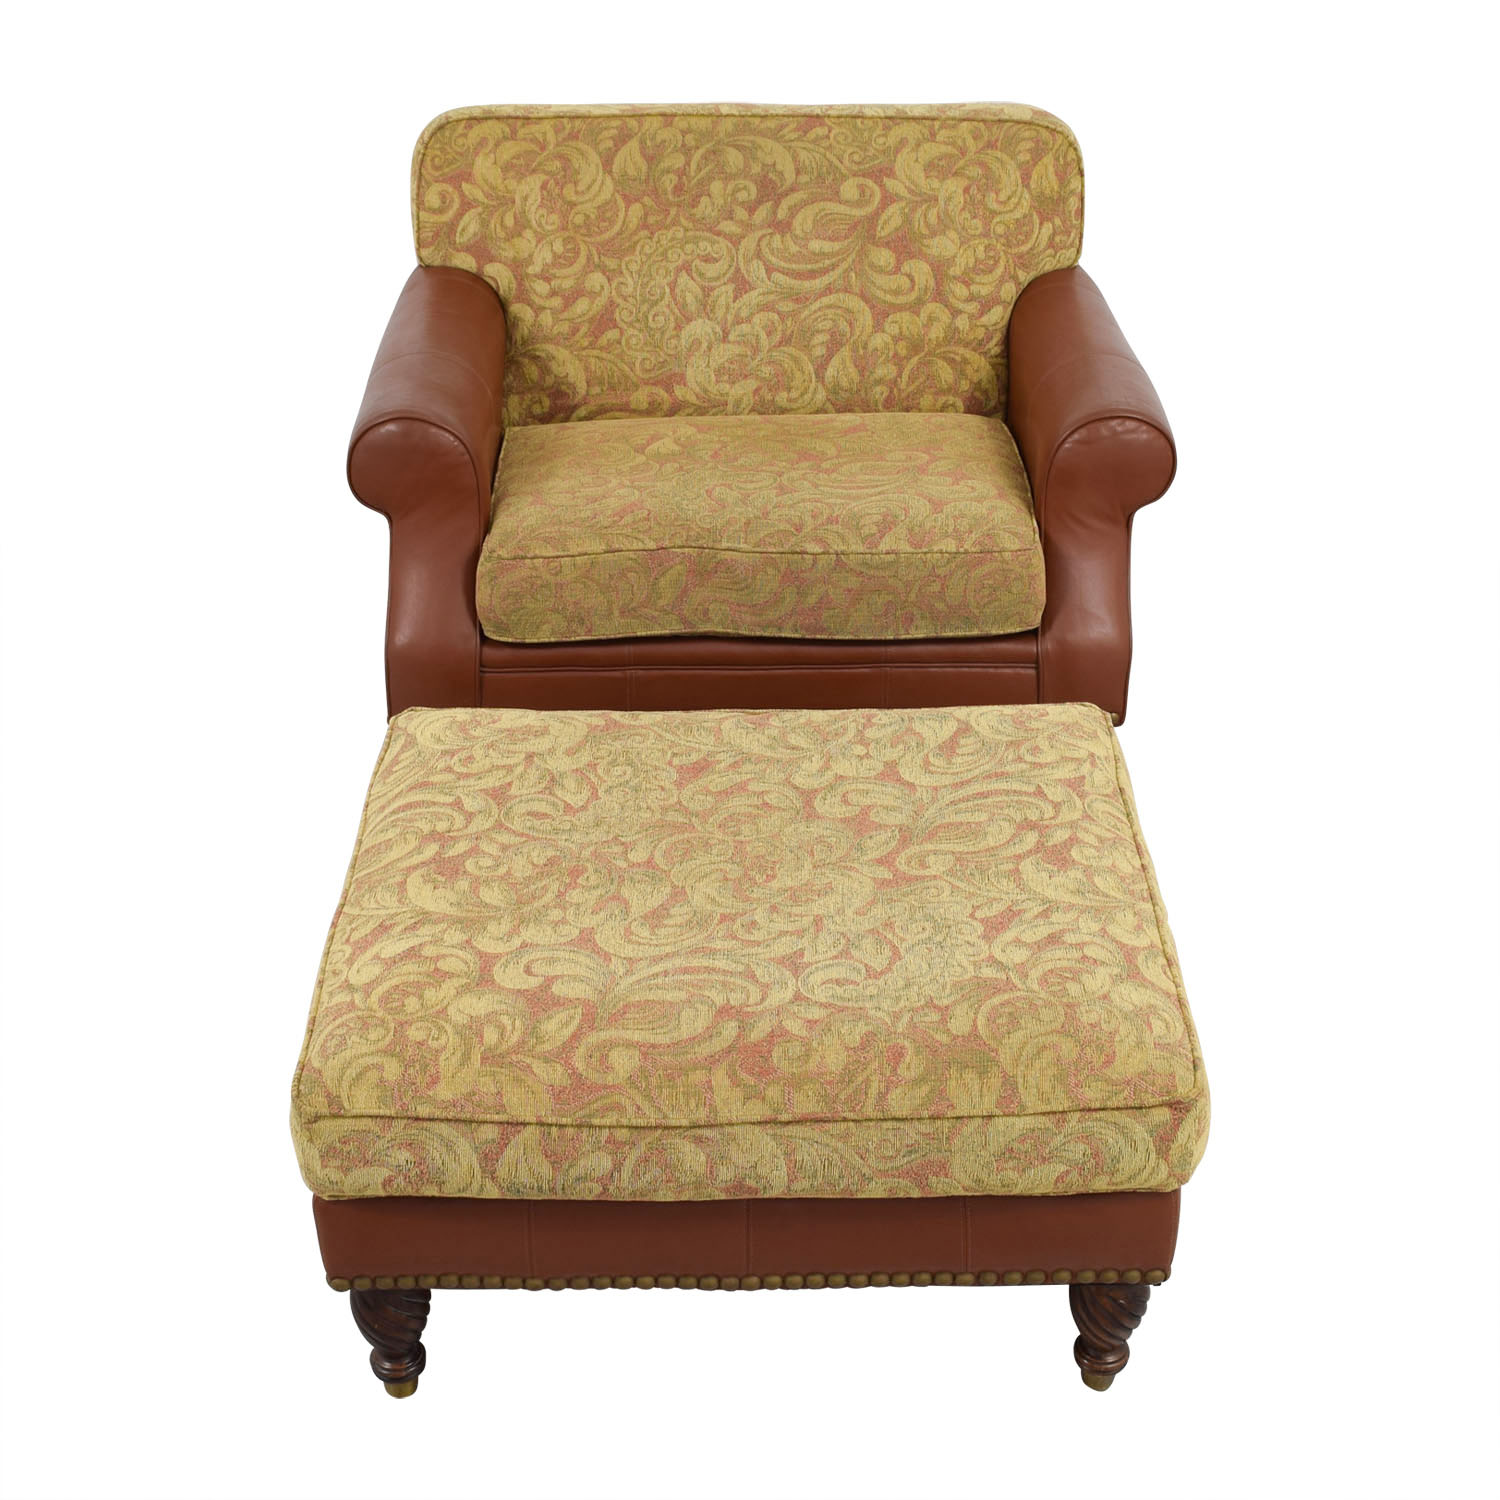 Huffman Koos Leather & Jacquard Chair and Ottoman / Accent Chairs